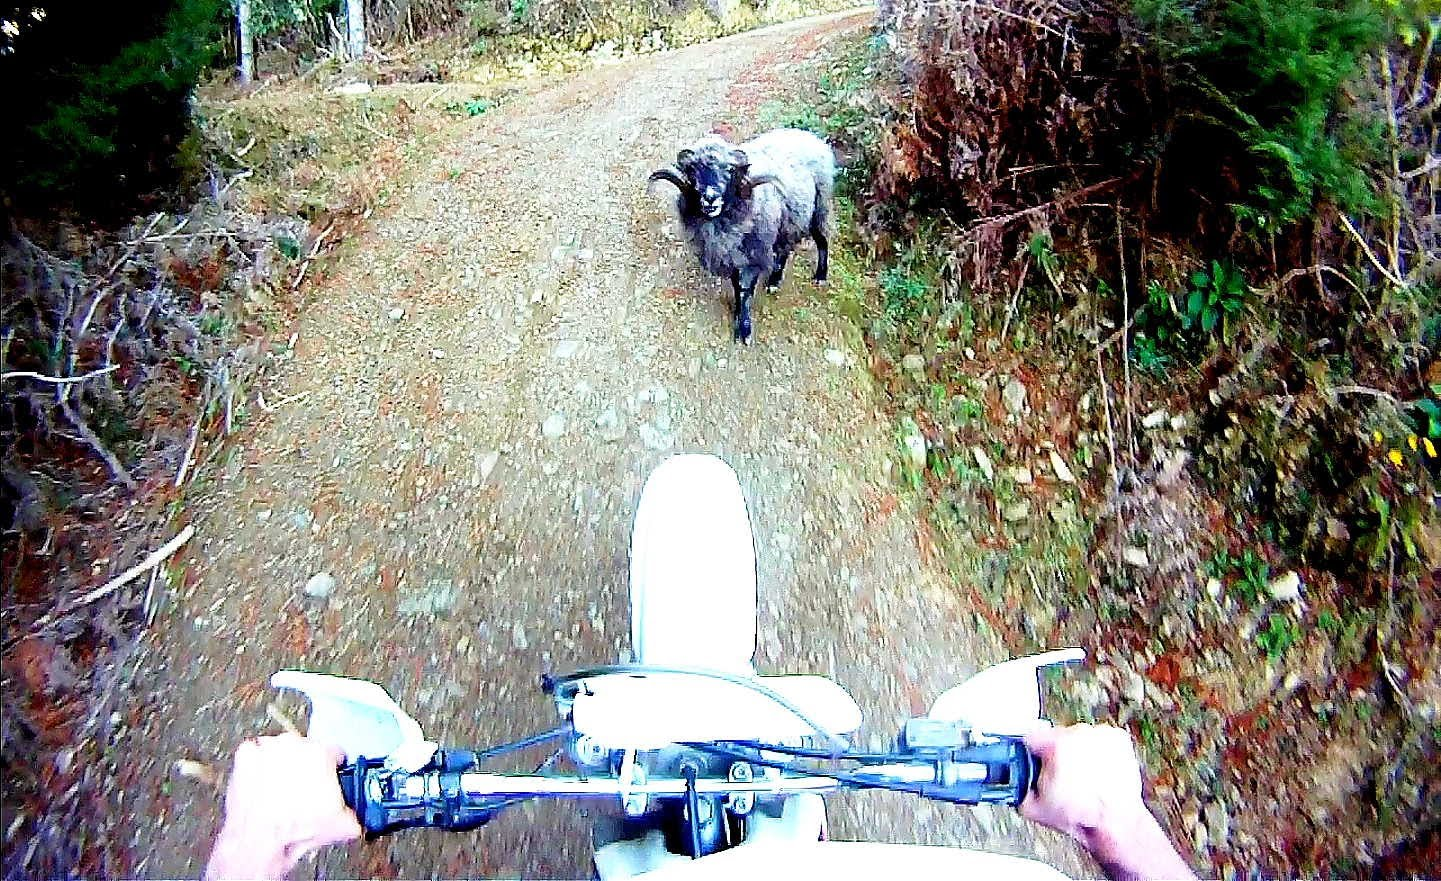 Angry Ram vs Motorcyclist